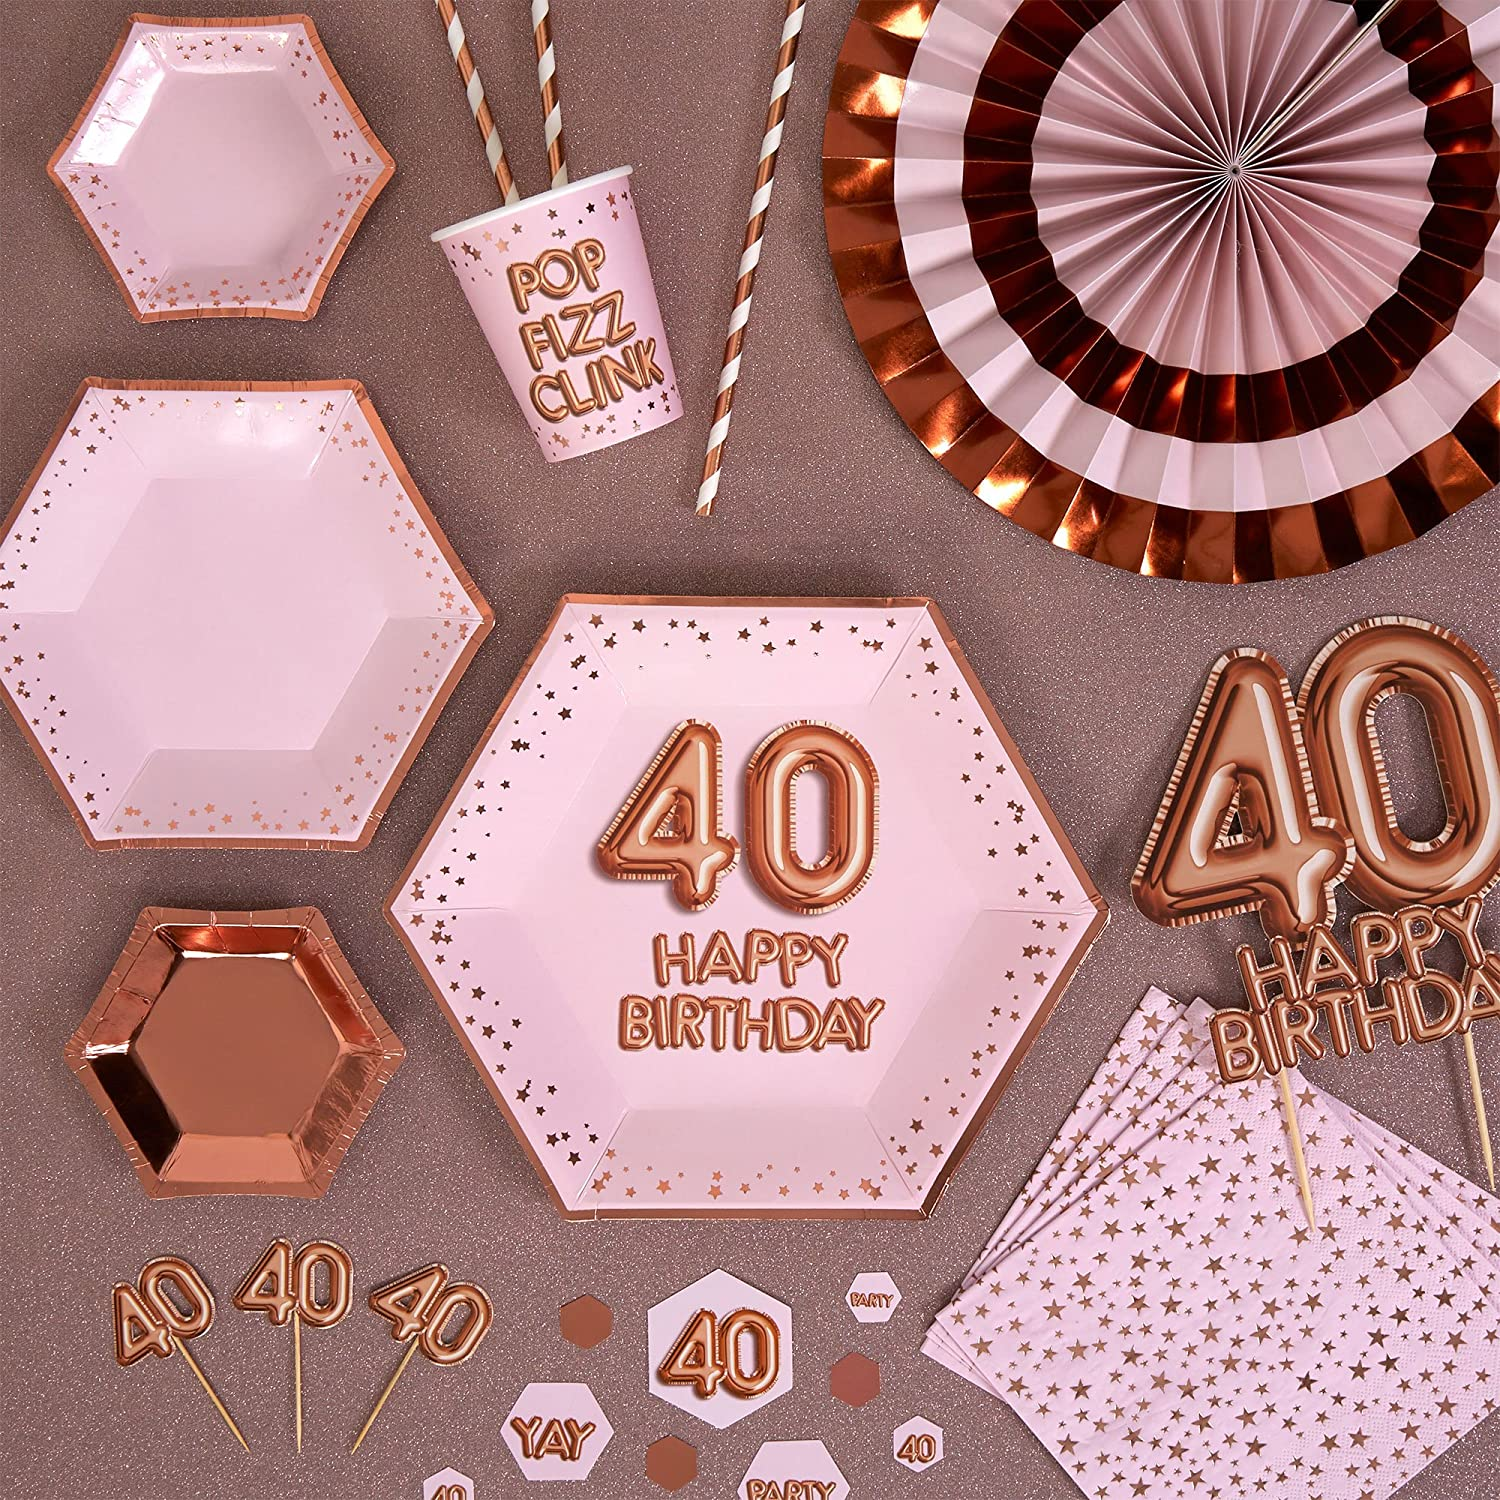 Pink//Rose Gold Neviti 773437 Glitz and Glamour Age 40 Confetti Table Scatters